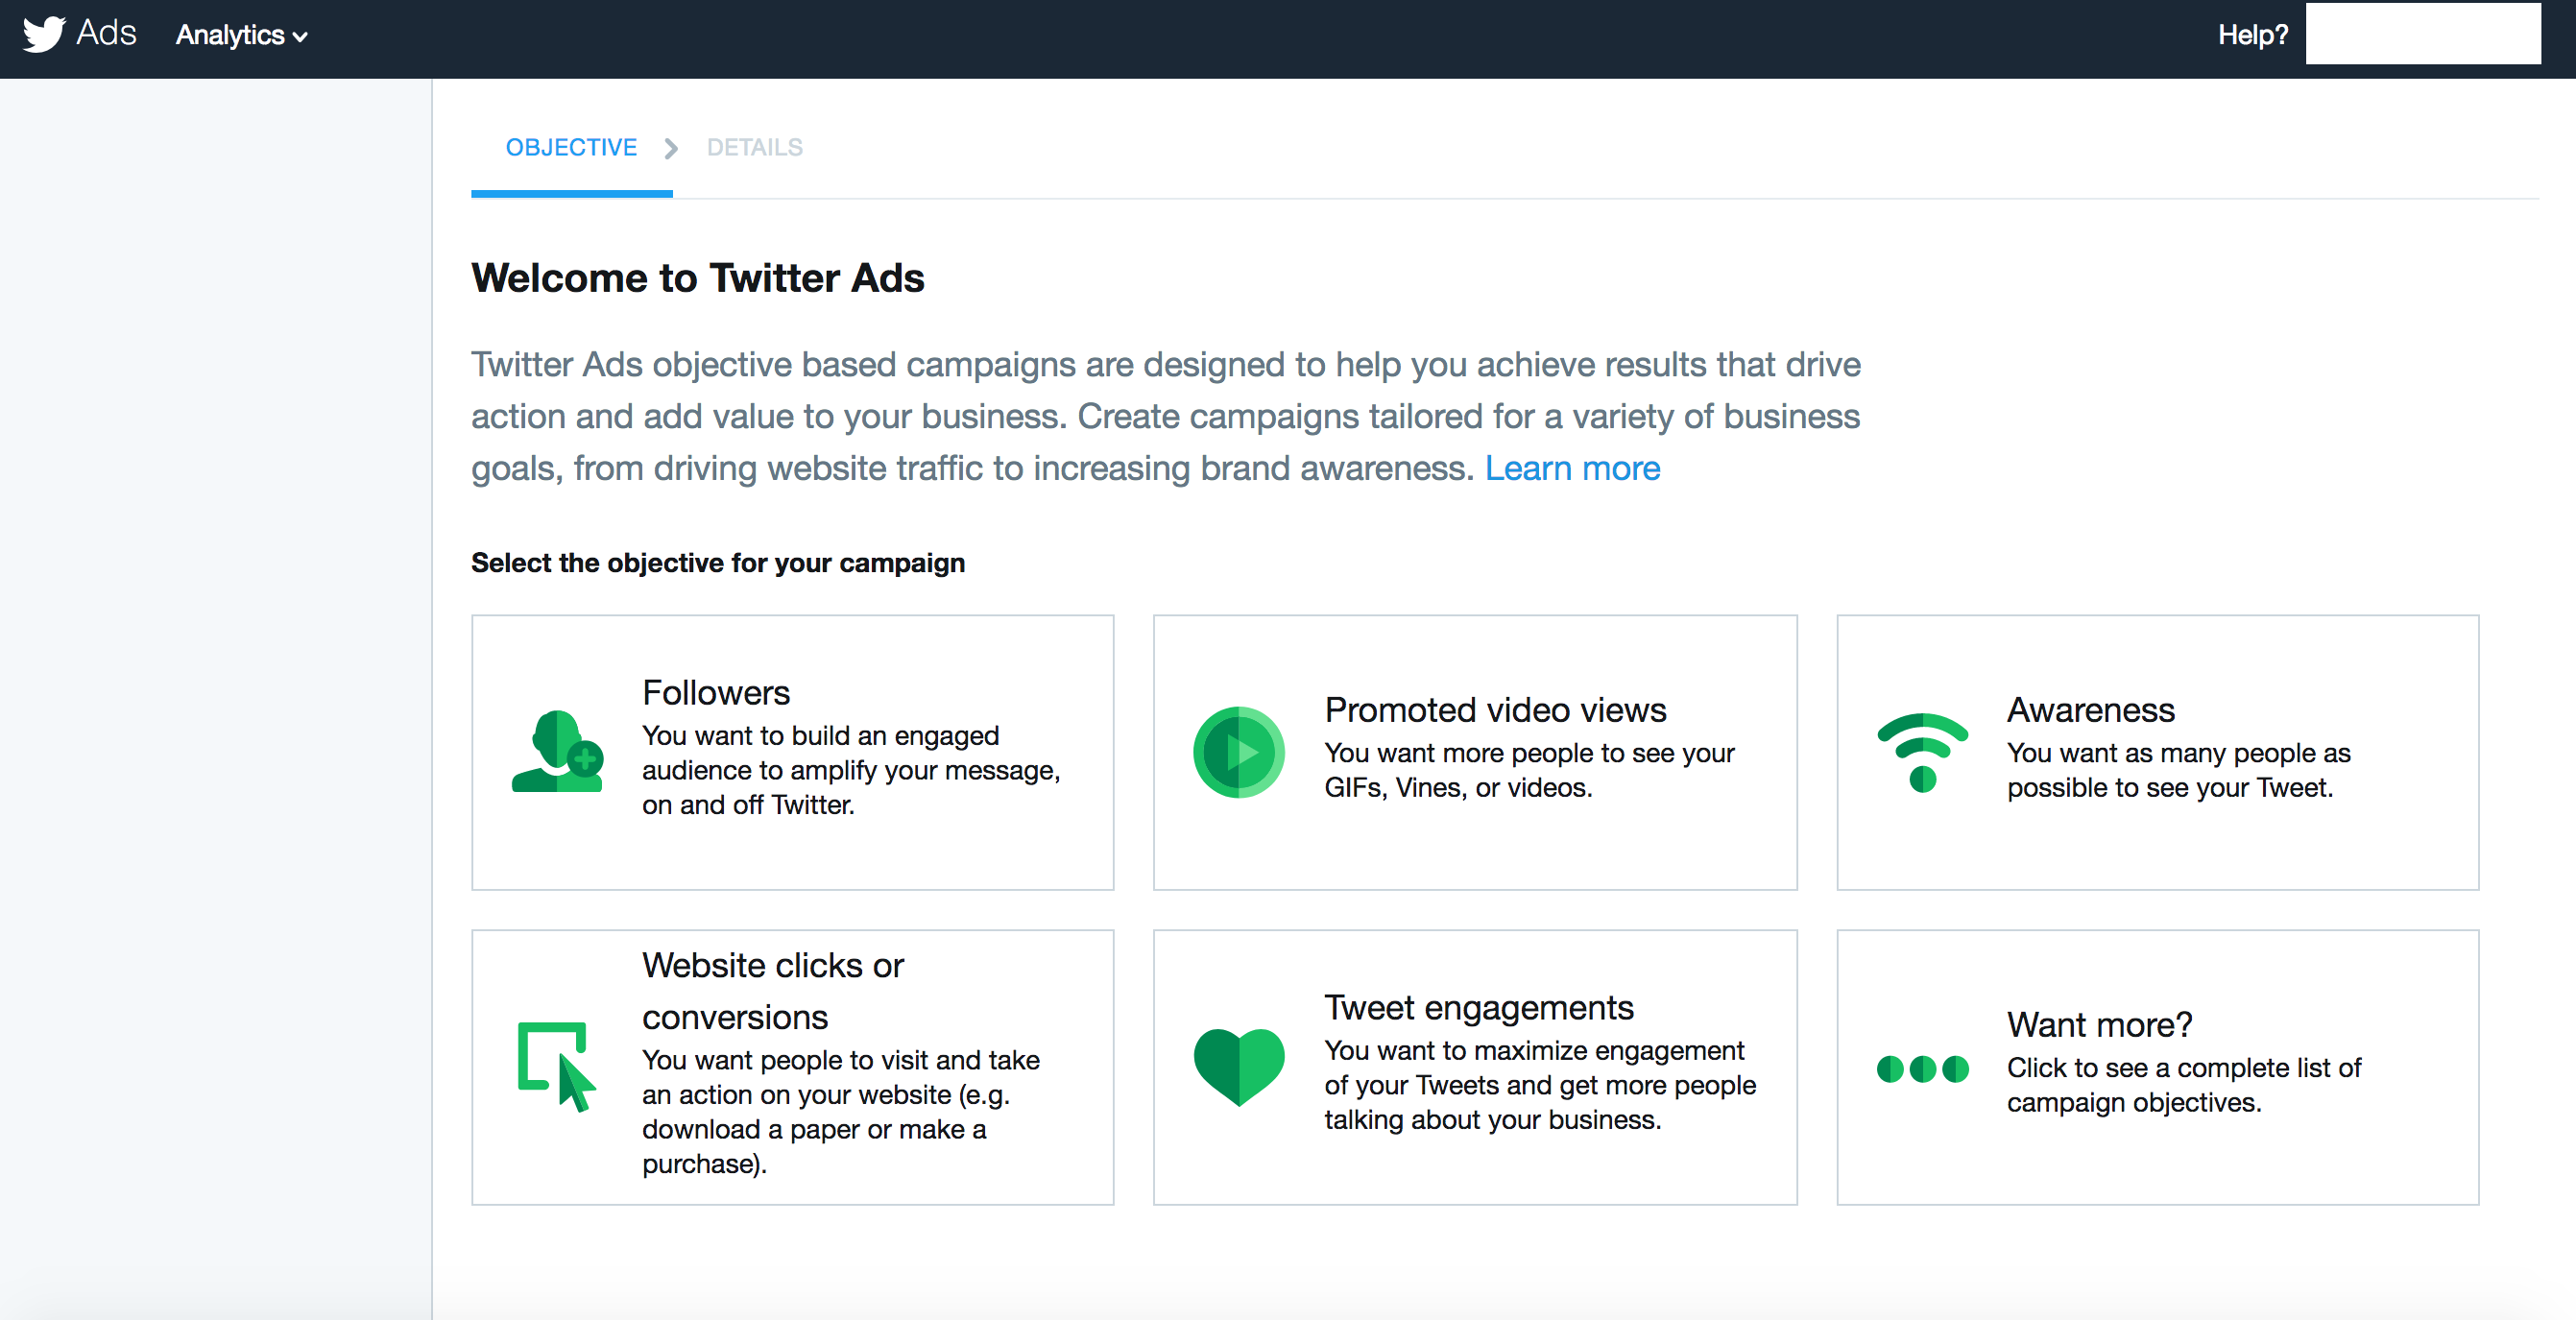 Enables marketers to develop custom ads based on campaign objectives like engagement, awareness, and new followers